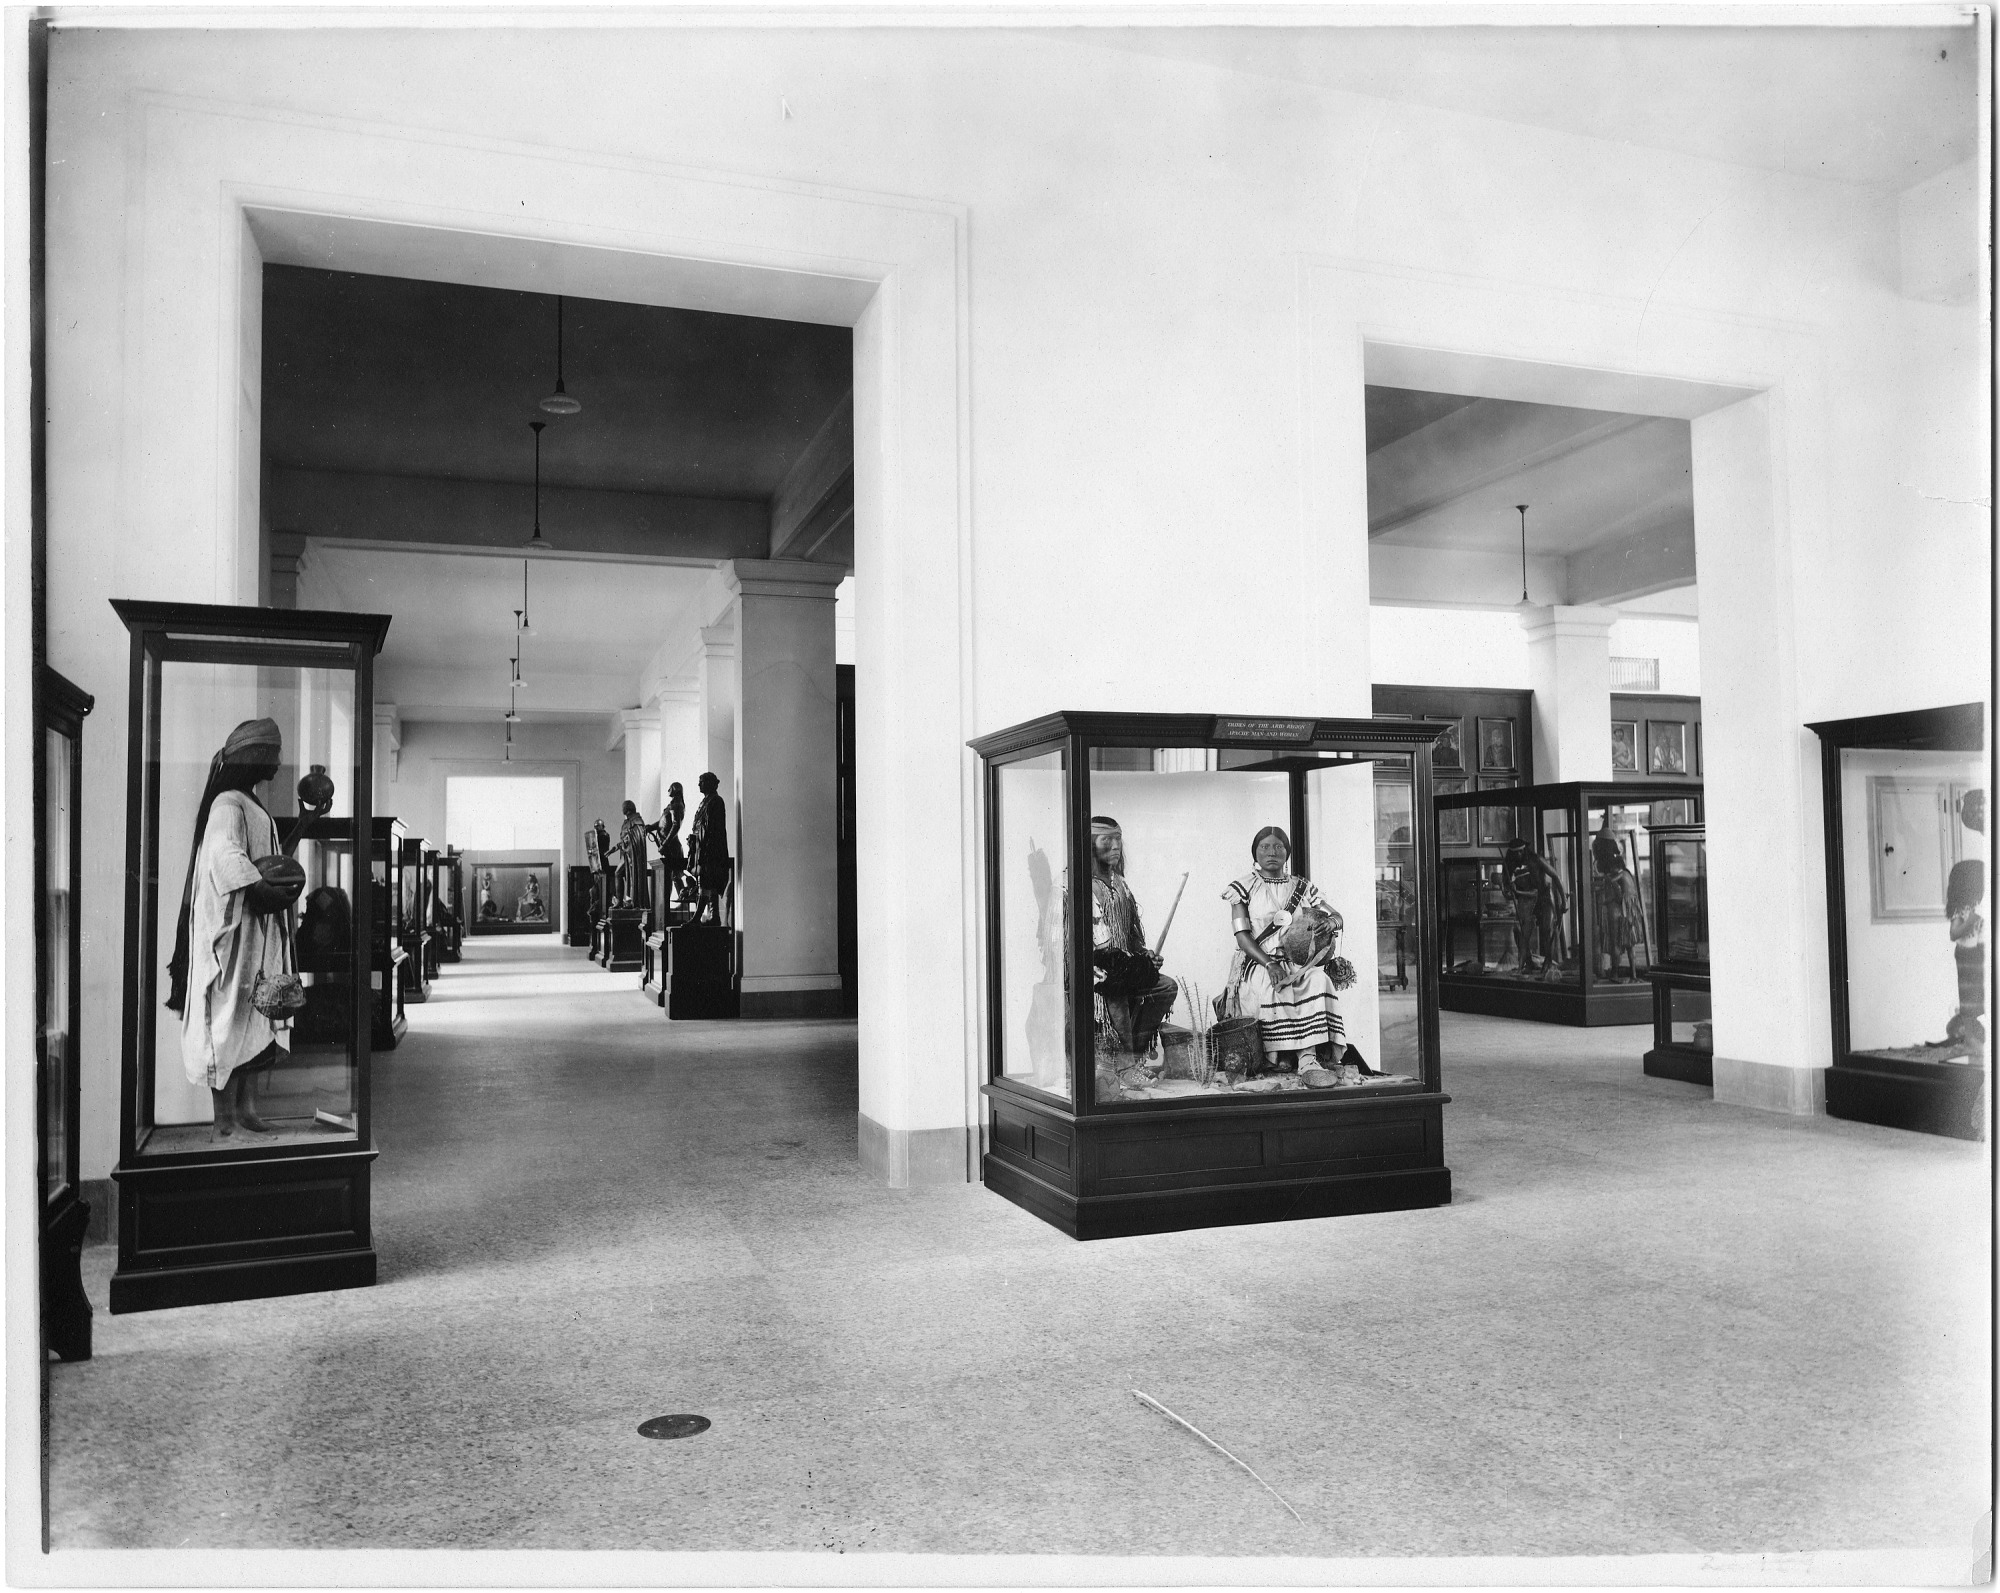 United States National Museum, Exhibit Hall